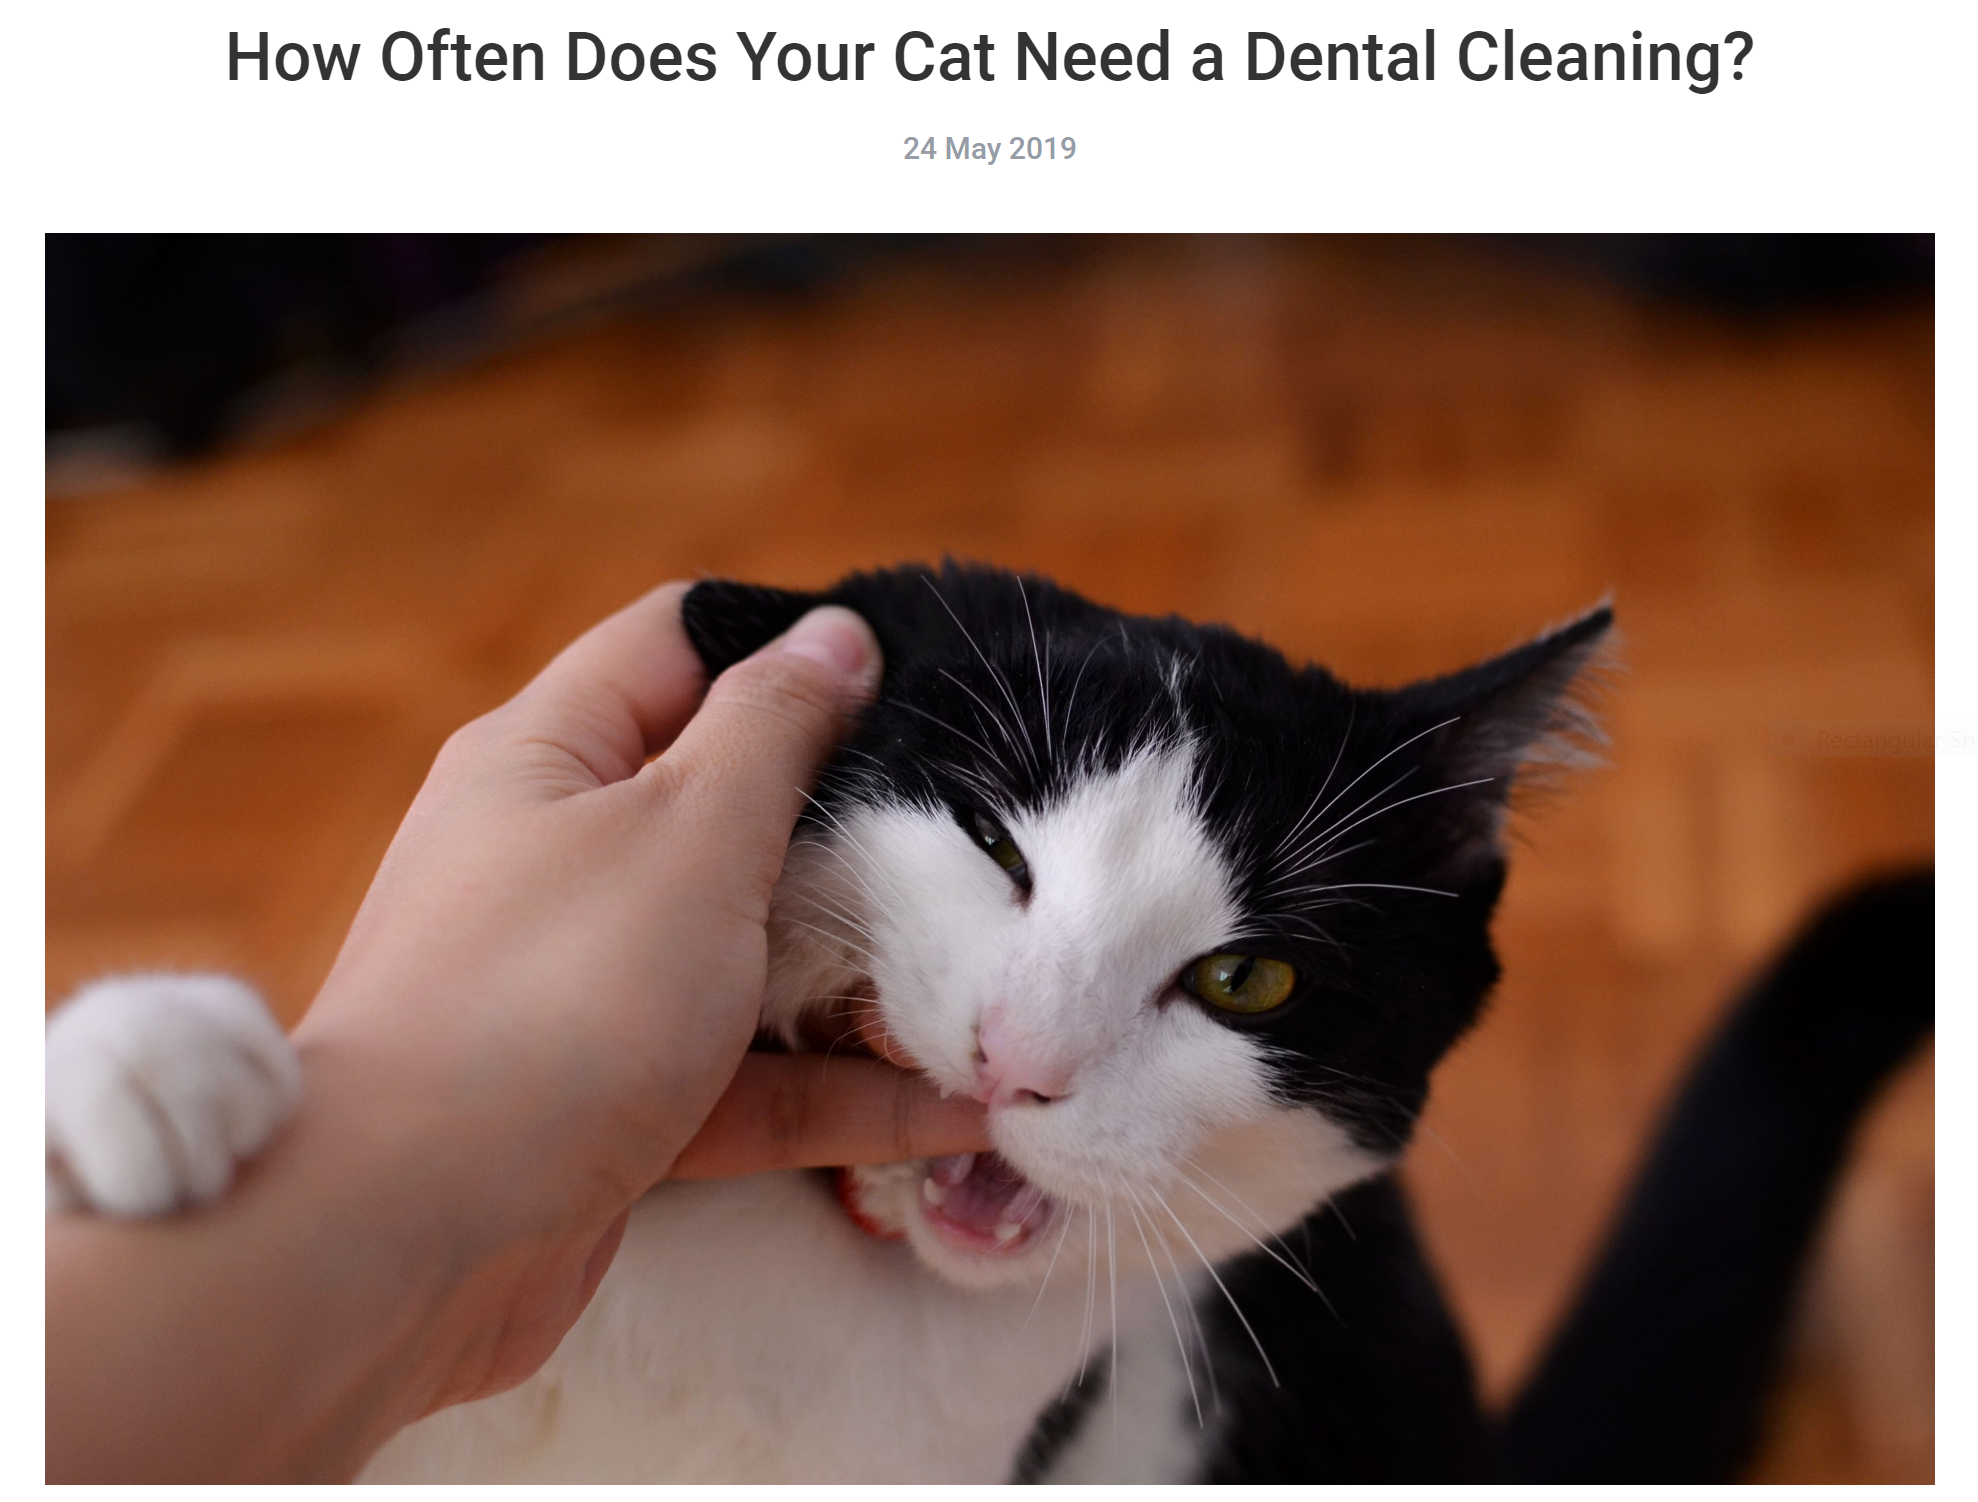 How Often Does Your Cat Need A Dental Cleaning Our Pet Blogs Cat Biting Love Your Pet Day Pet Day